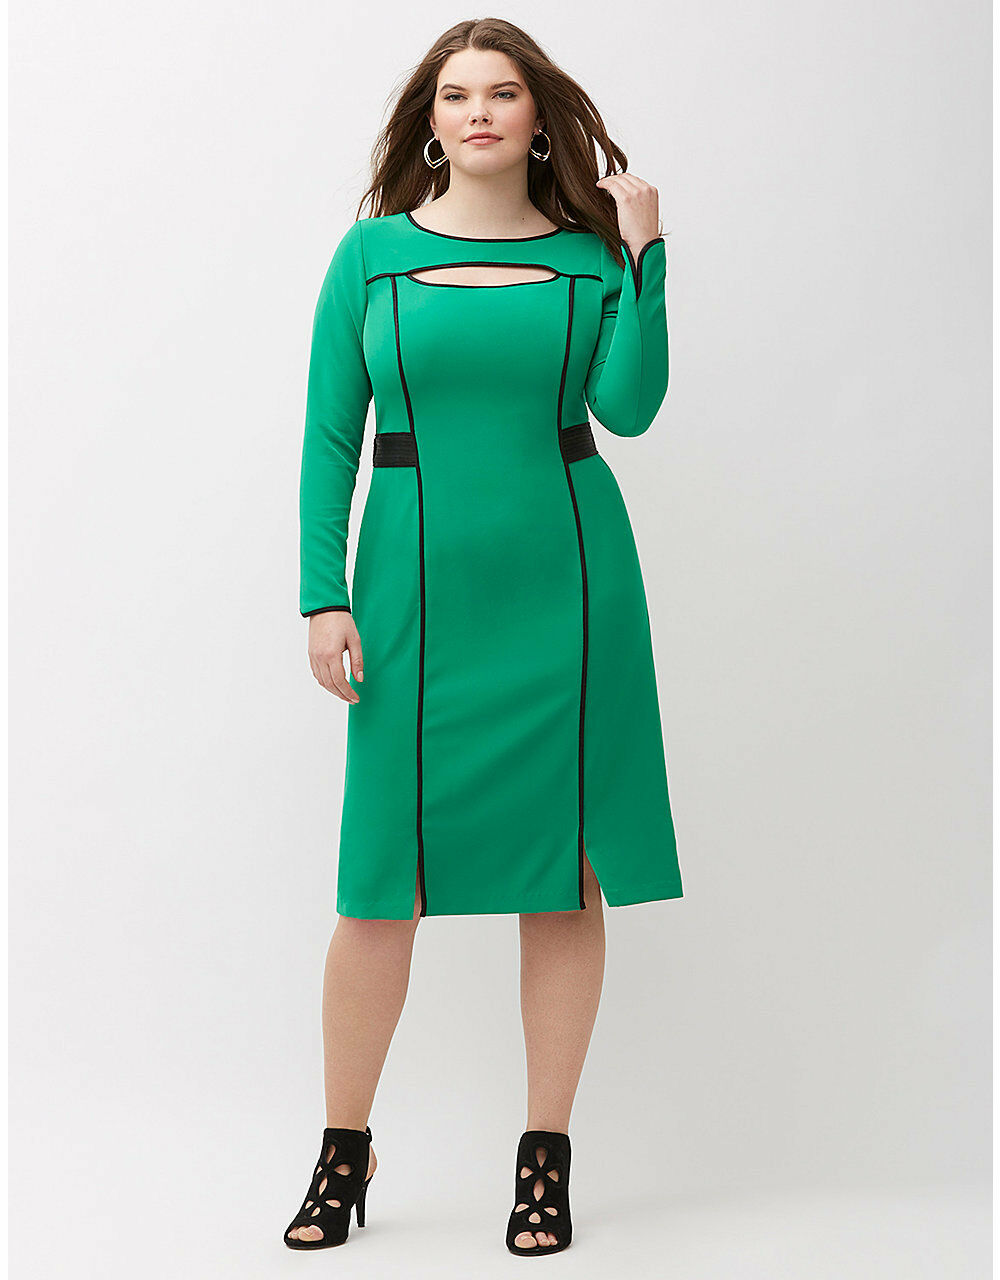 NEW LANE BRYANT PLUS SIZE GREEN CUT-OUT DRESS WITH FAUX LEATHER SZ 14